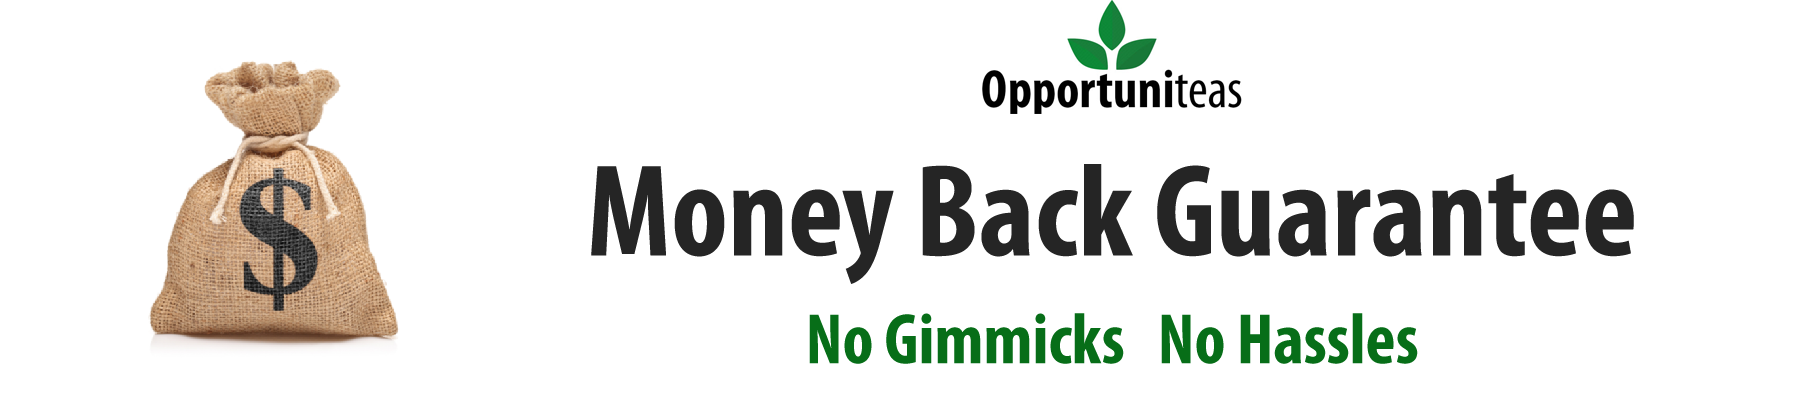 Opportuniteas health supplement money back guarantee